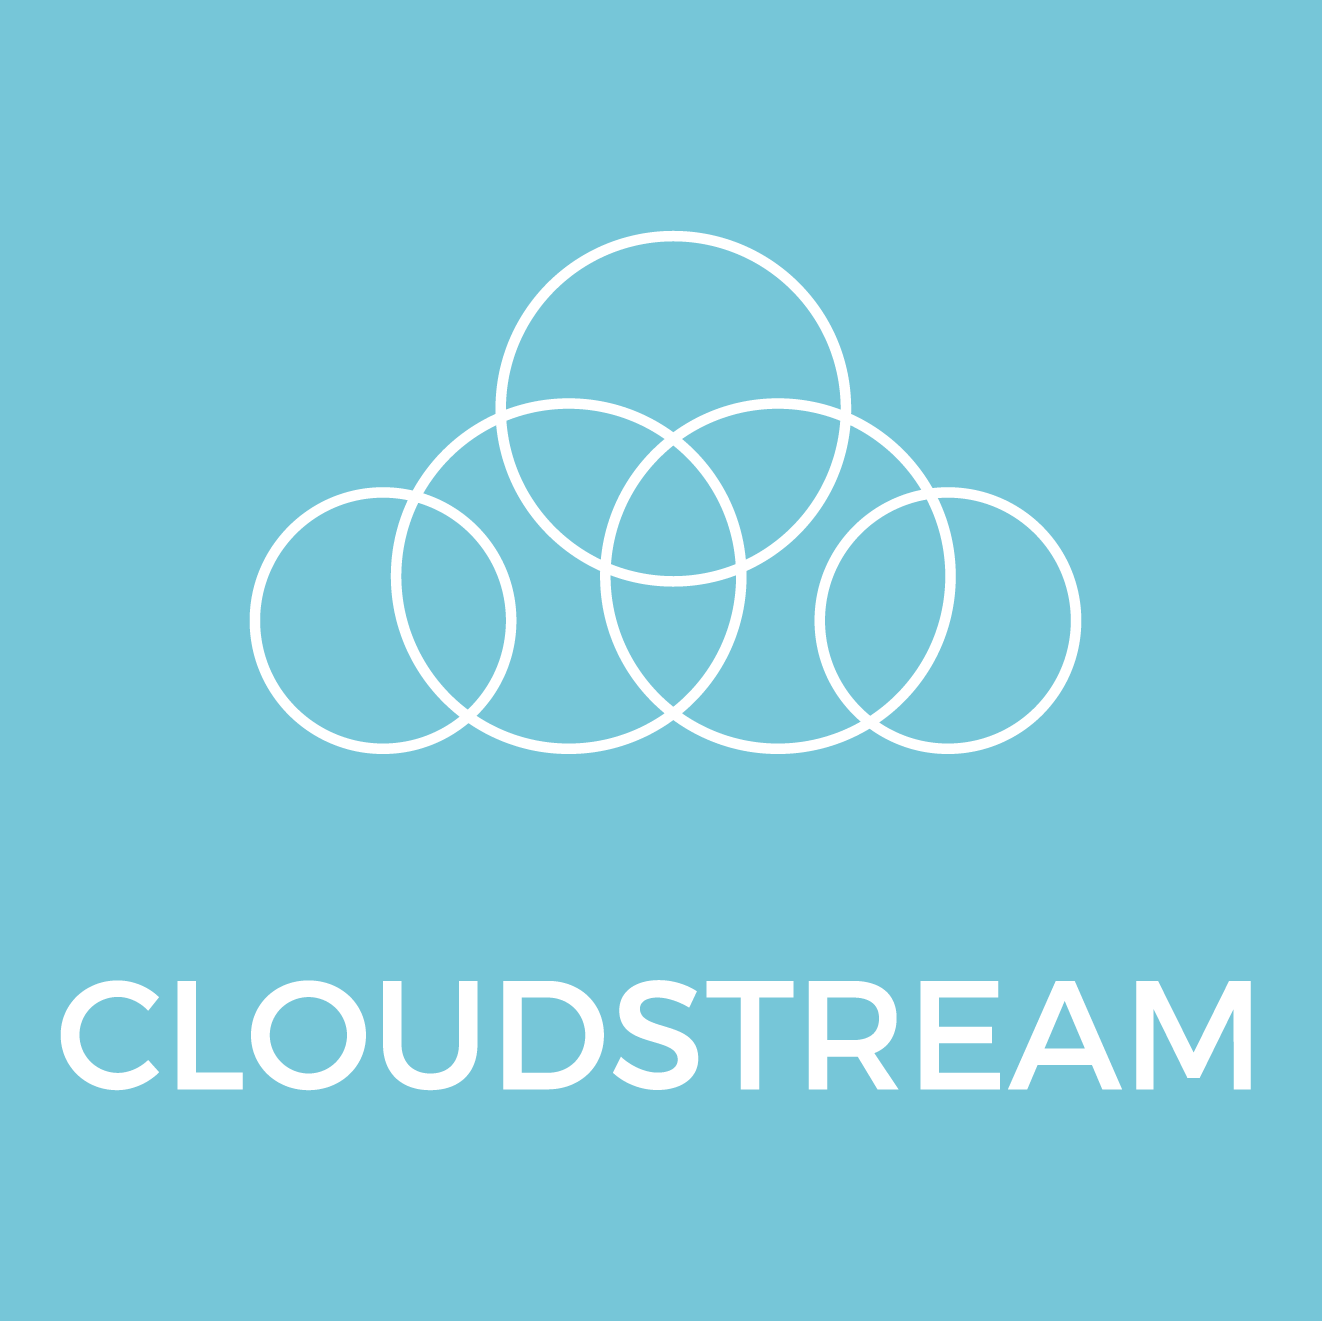 CloudStream